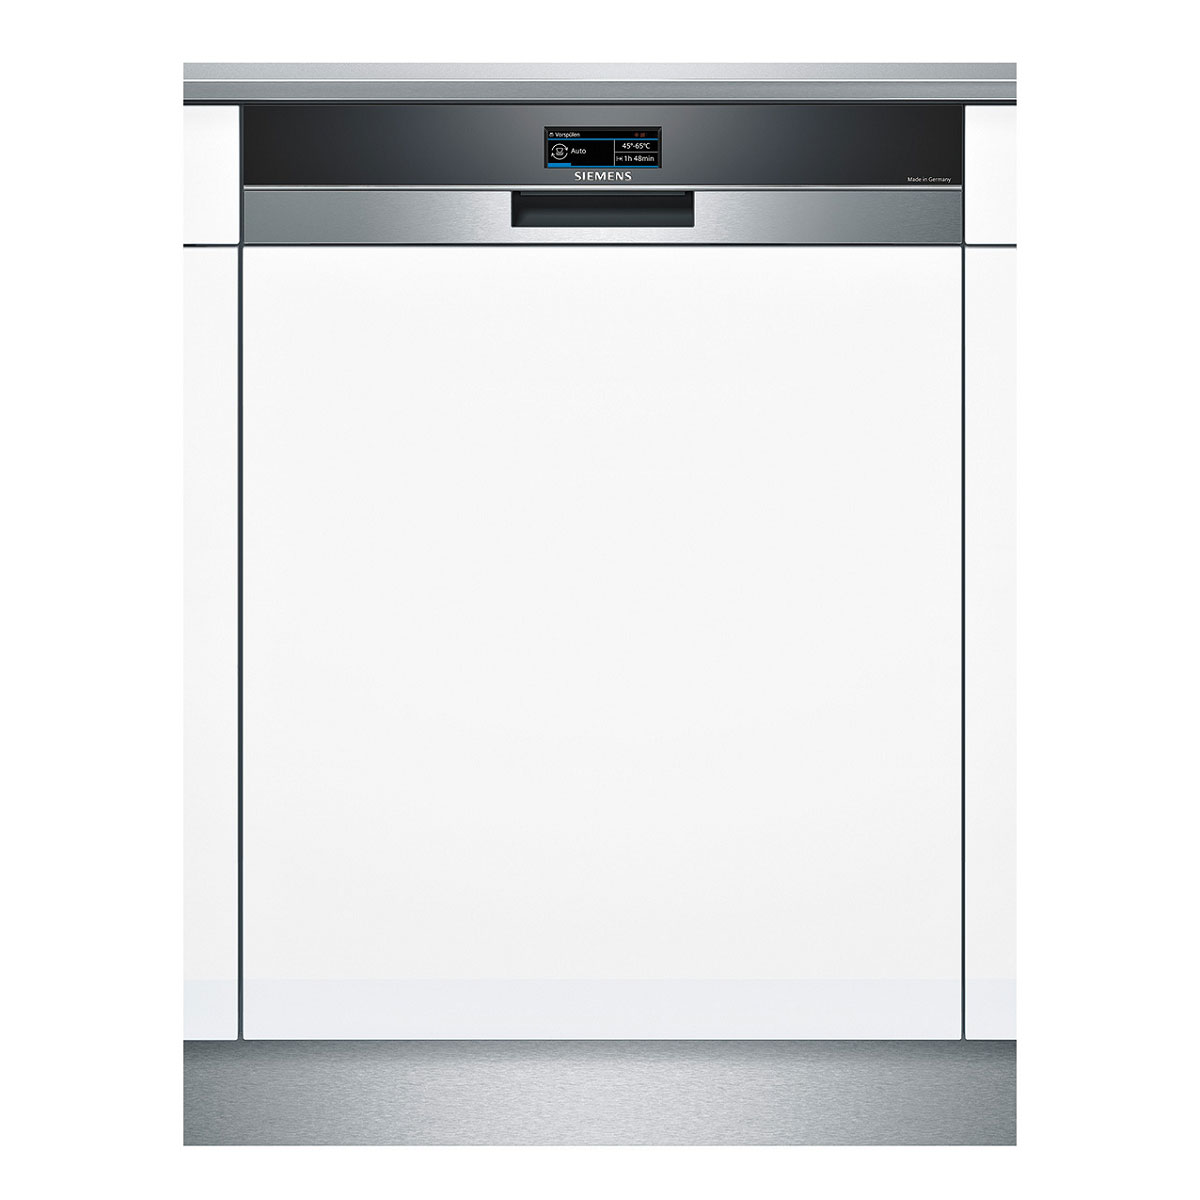 Siemens SX578S02TA iQ700 Semi-Integrated Dishwasher